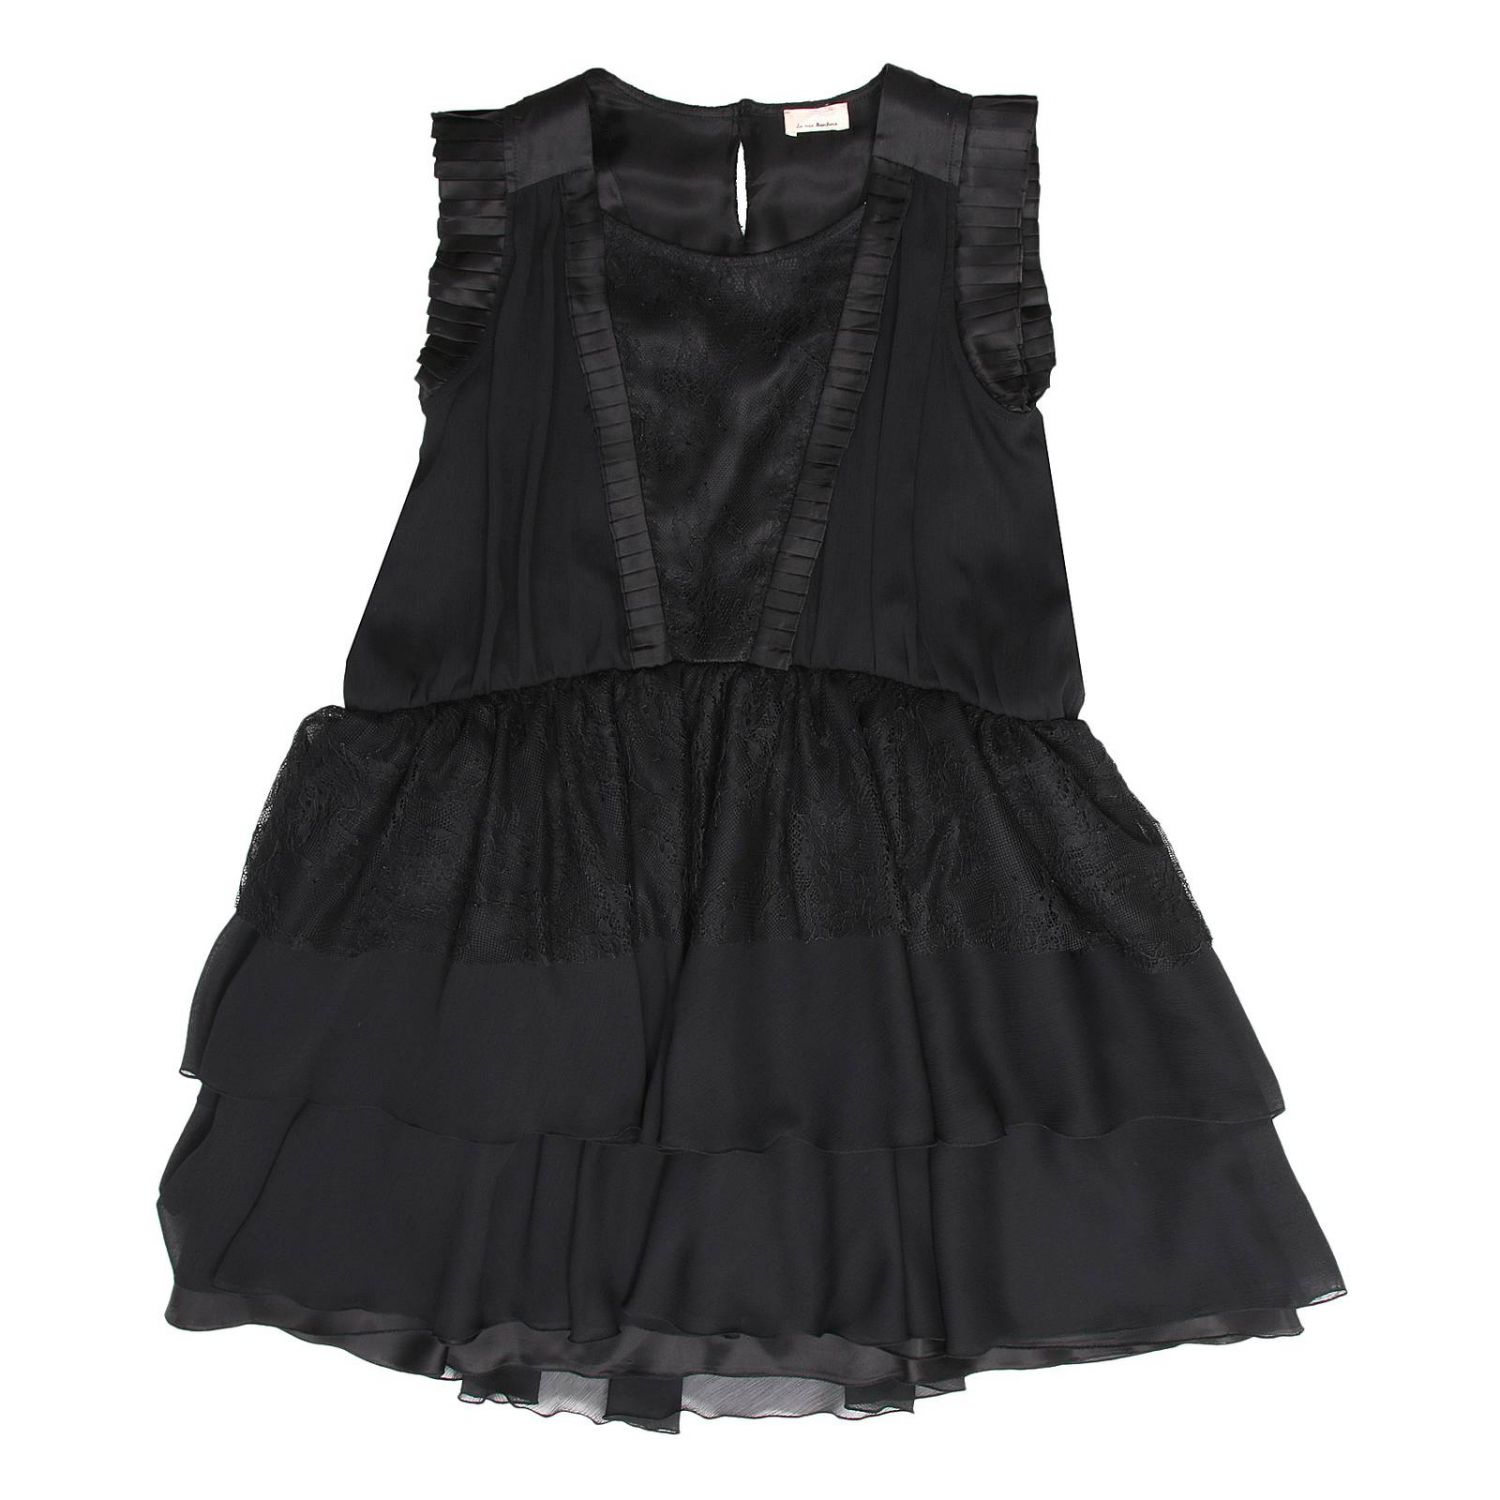 Dress Dress Kids Elisabetta Franchi 8328955